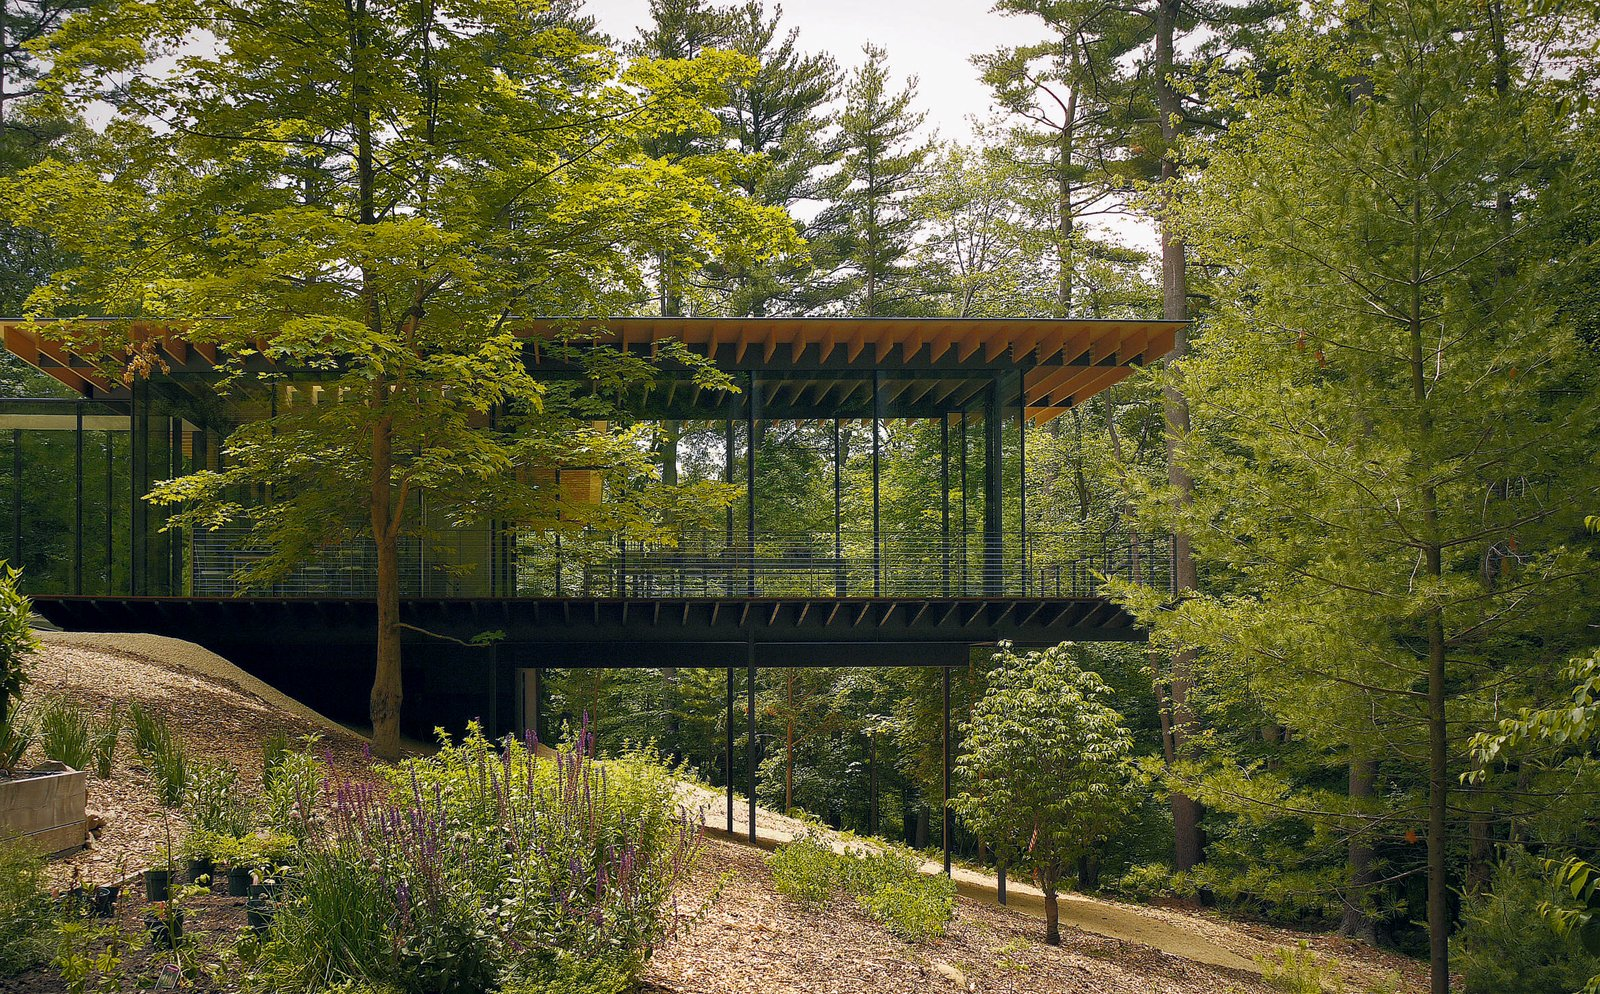 Kengo Kuma updated the mid-century Glass Wood House in New Canaan, Connecticut, while maintaining the home's integration with its natural surroundings. Photo by Kengo Kuma & Associates for Glass Wood House  Photo 5 of 8 in 100 Contemporary Green Buildings